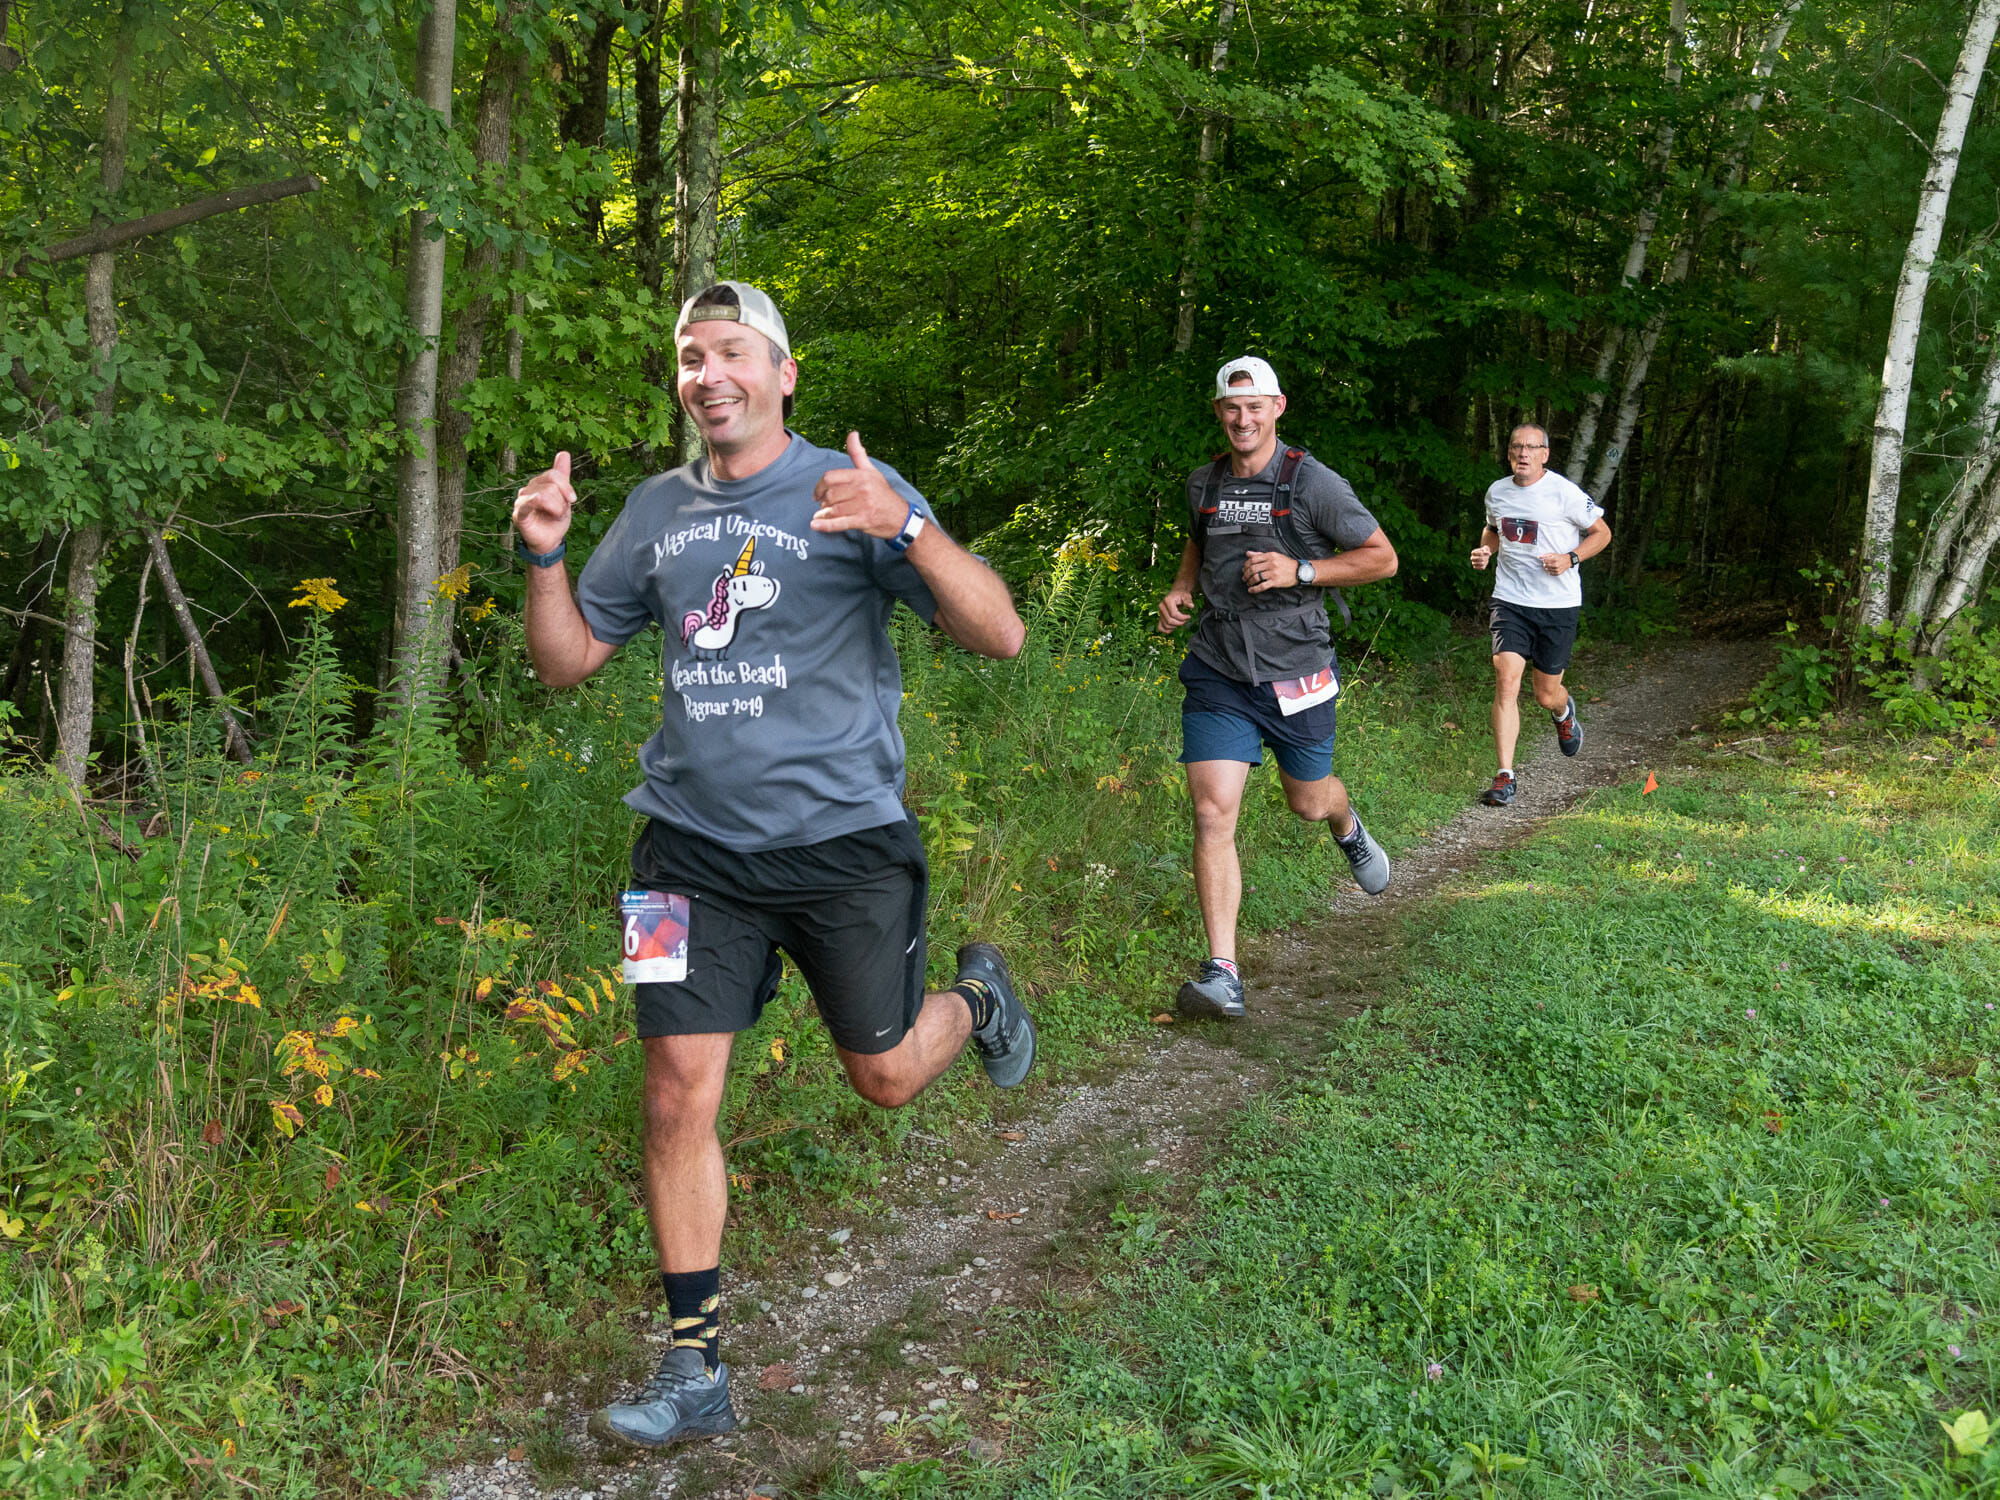 Slate valley trail runners